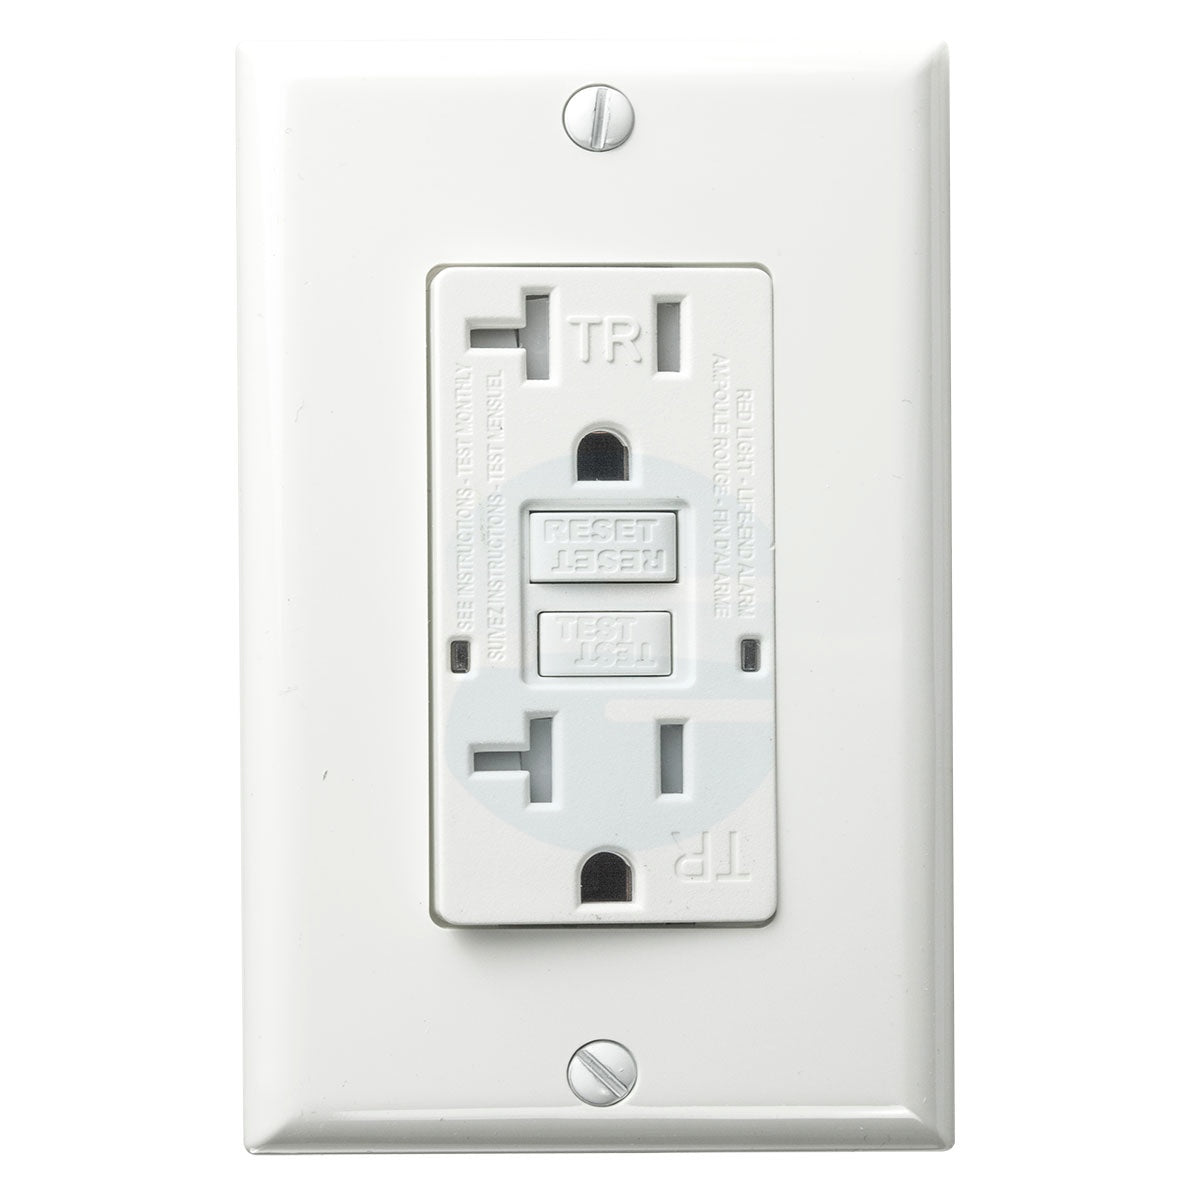 20a Tamper Proof GFCI Outlet